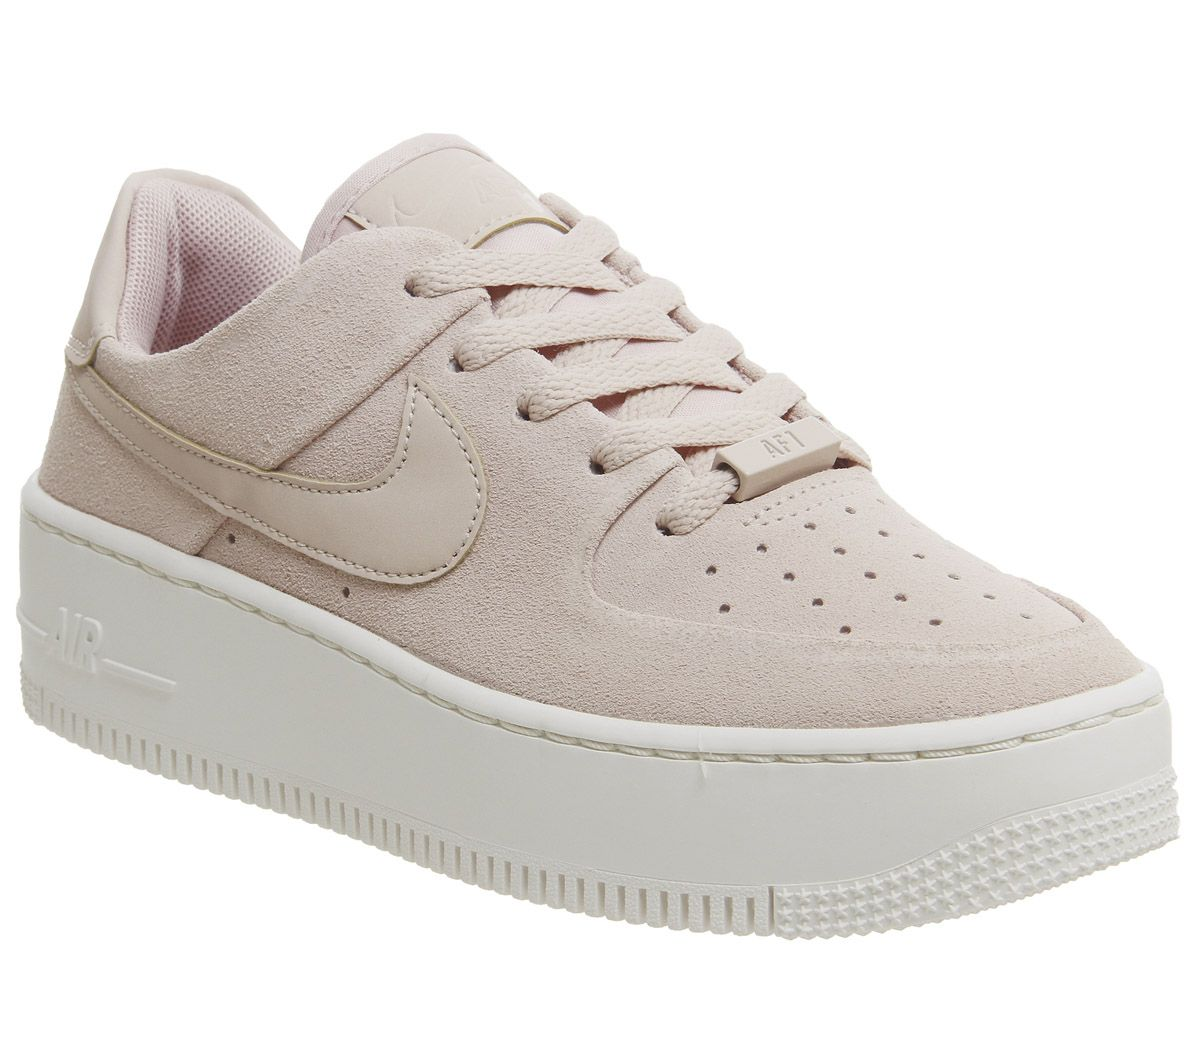 the best attitude ba8e0 39dc2 Nike Air Force 1 Sage Trainers Particle Beige Phantom - Hers trainers